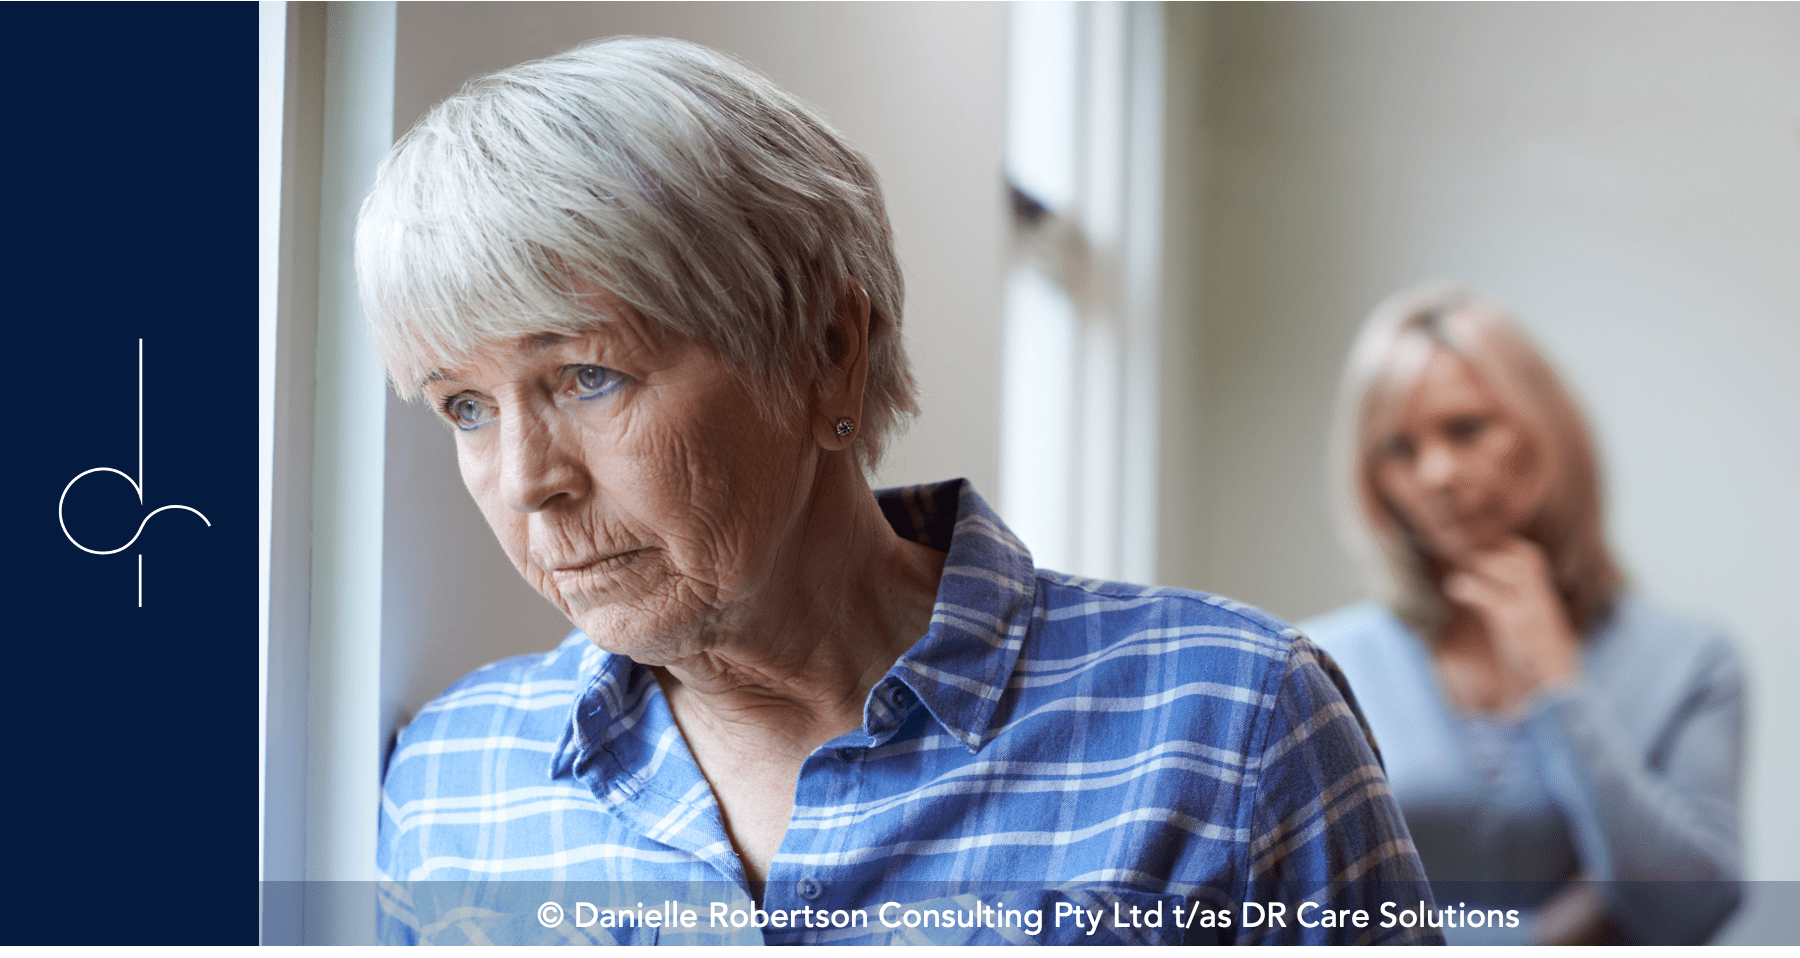 Taking a Break While Looking After a Loved One Diagnosed With Dementia